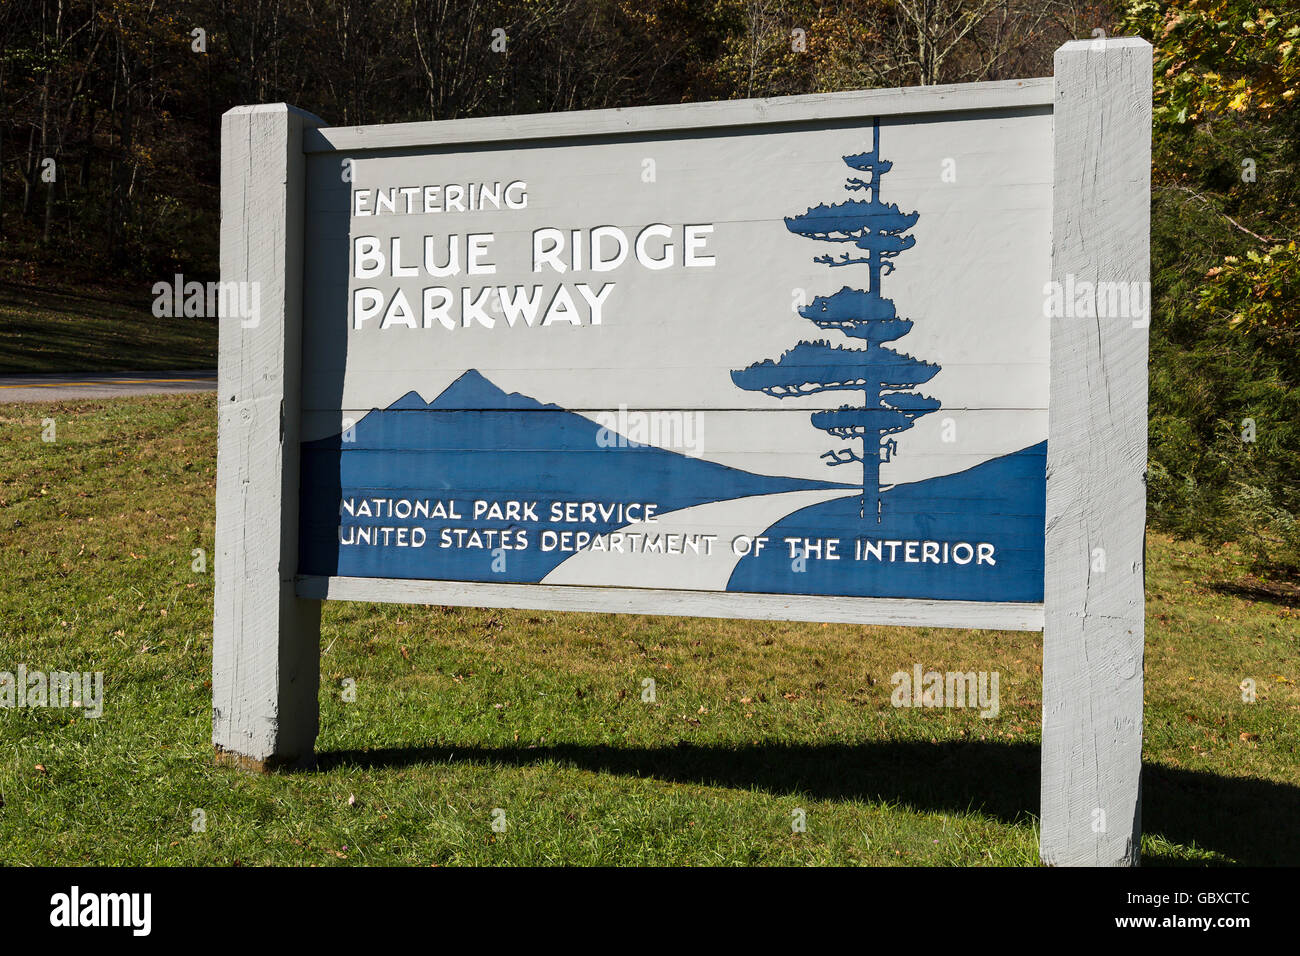 Entrance to Blue Ridge Parkway road sign, Asheville, NC, USA Stock Photo